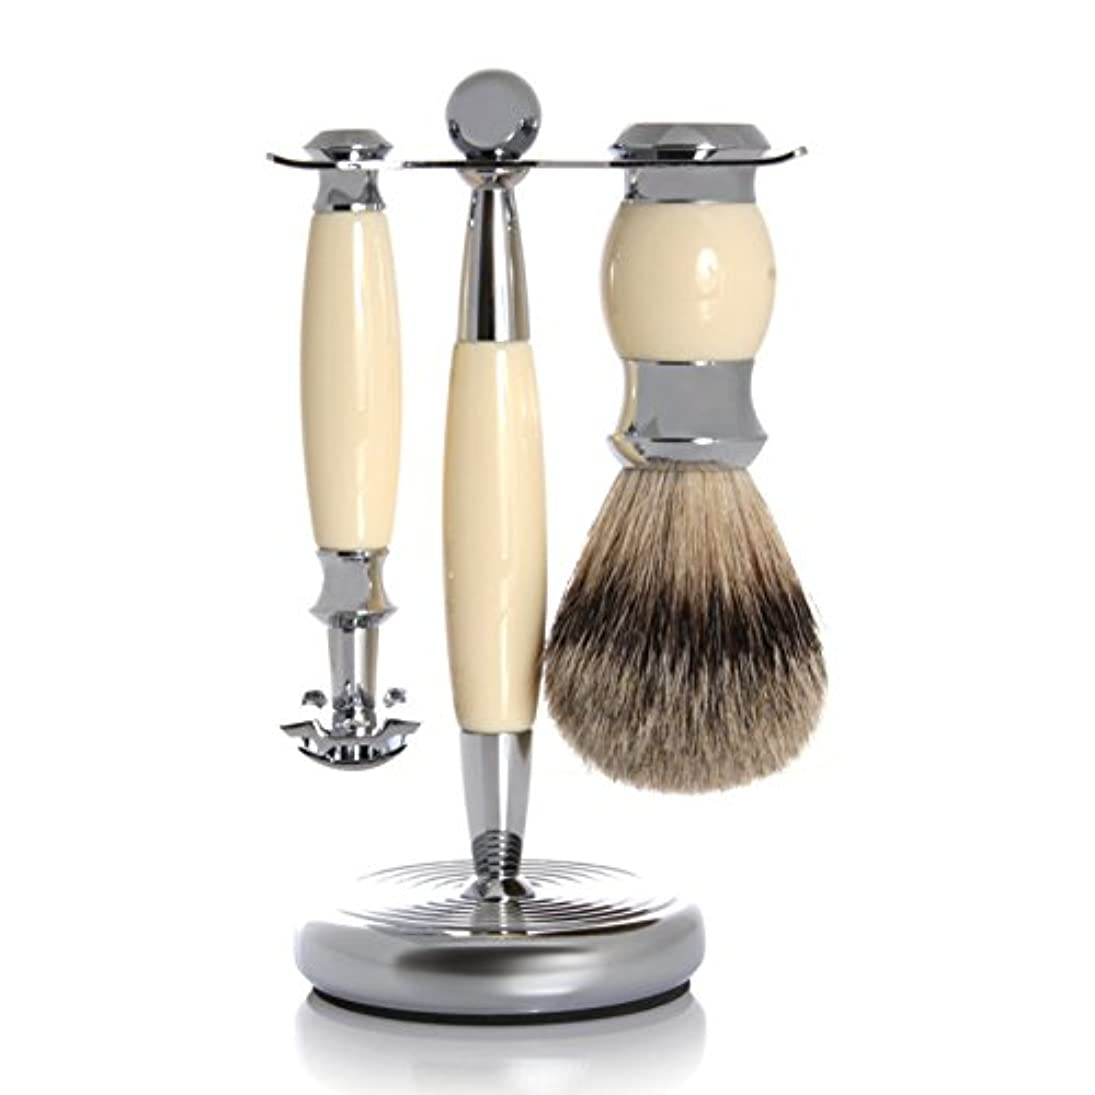 ペットポーズディスクGOLDDACHS Shaving Set, Safety razor, Finest Badger, white/silver